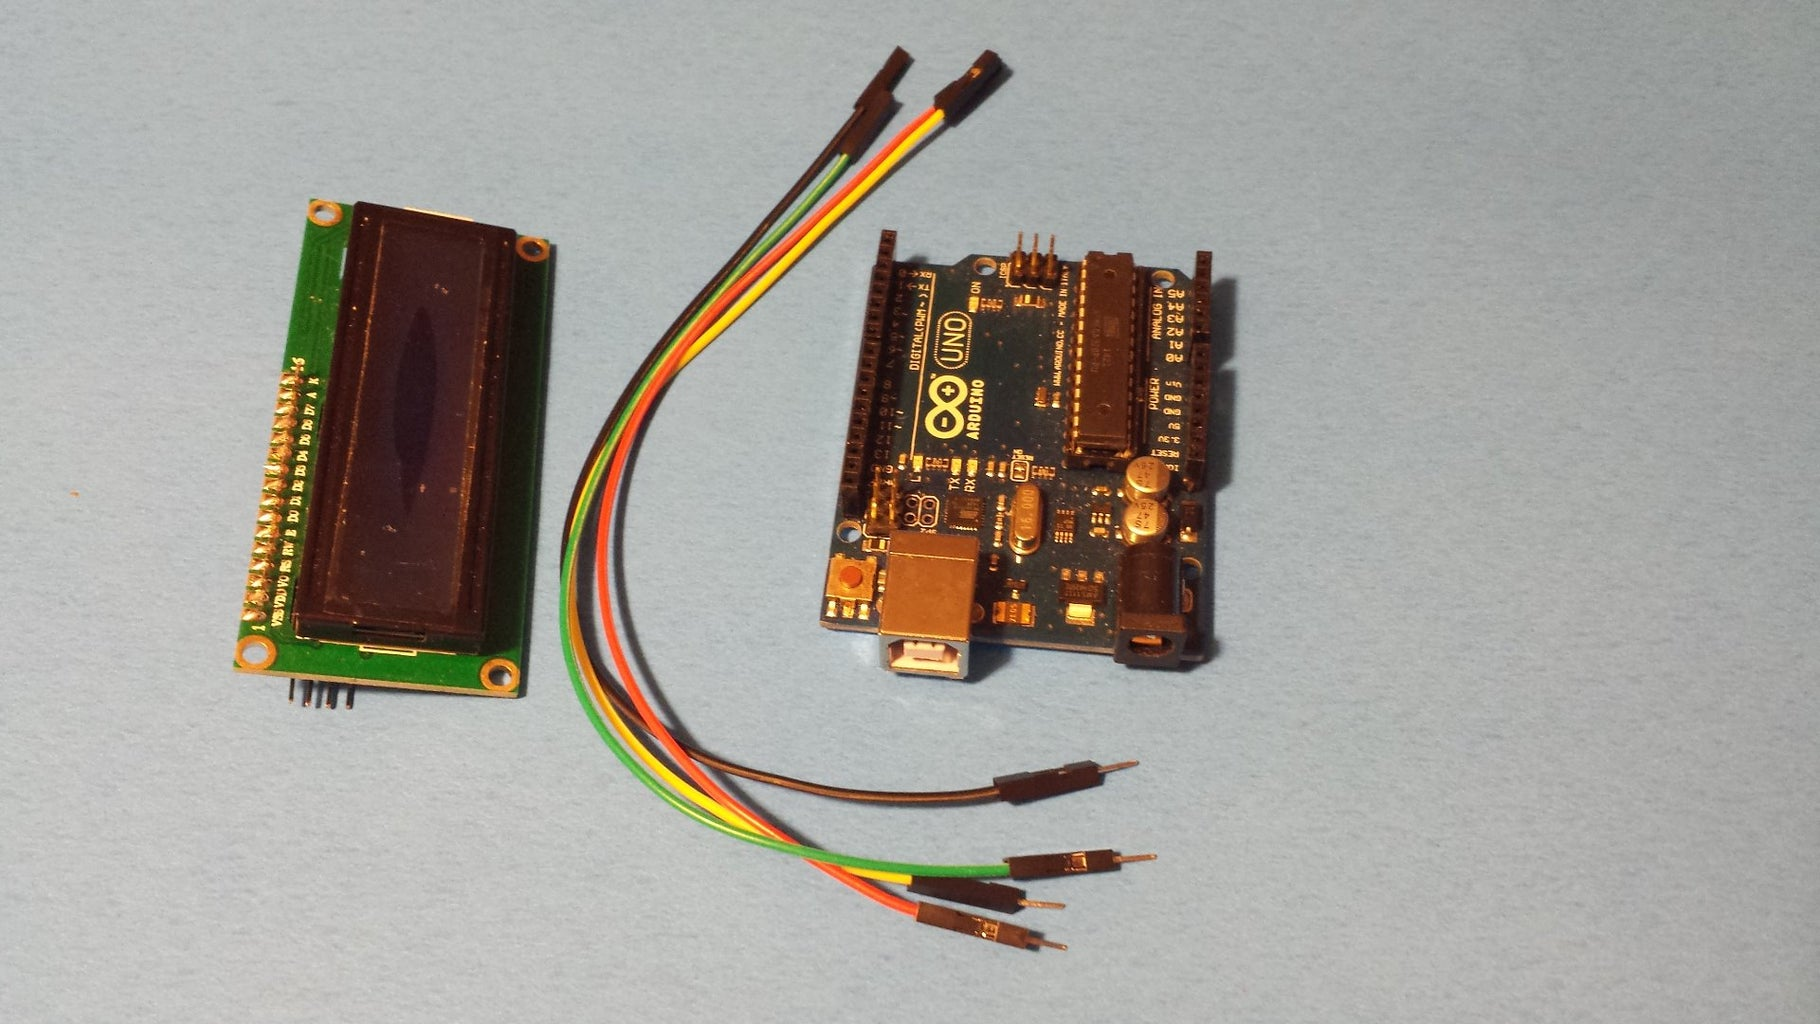 Connect the LCD, LM35 and the Arduino UNO